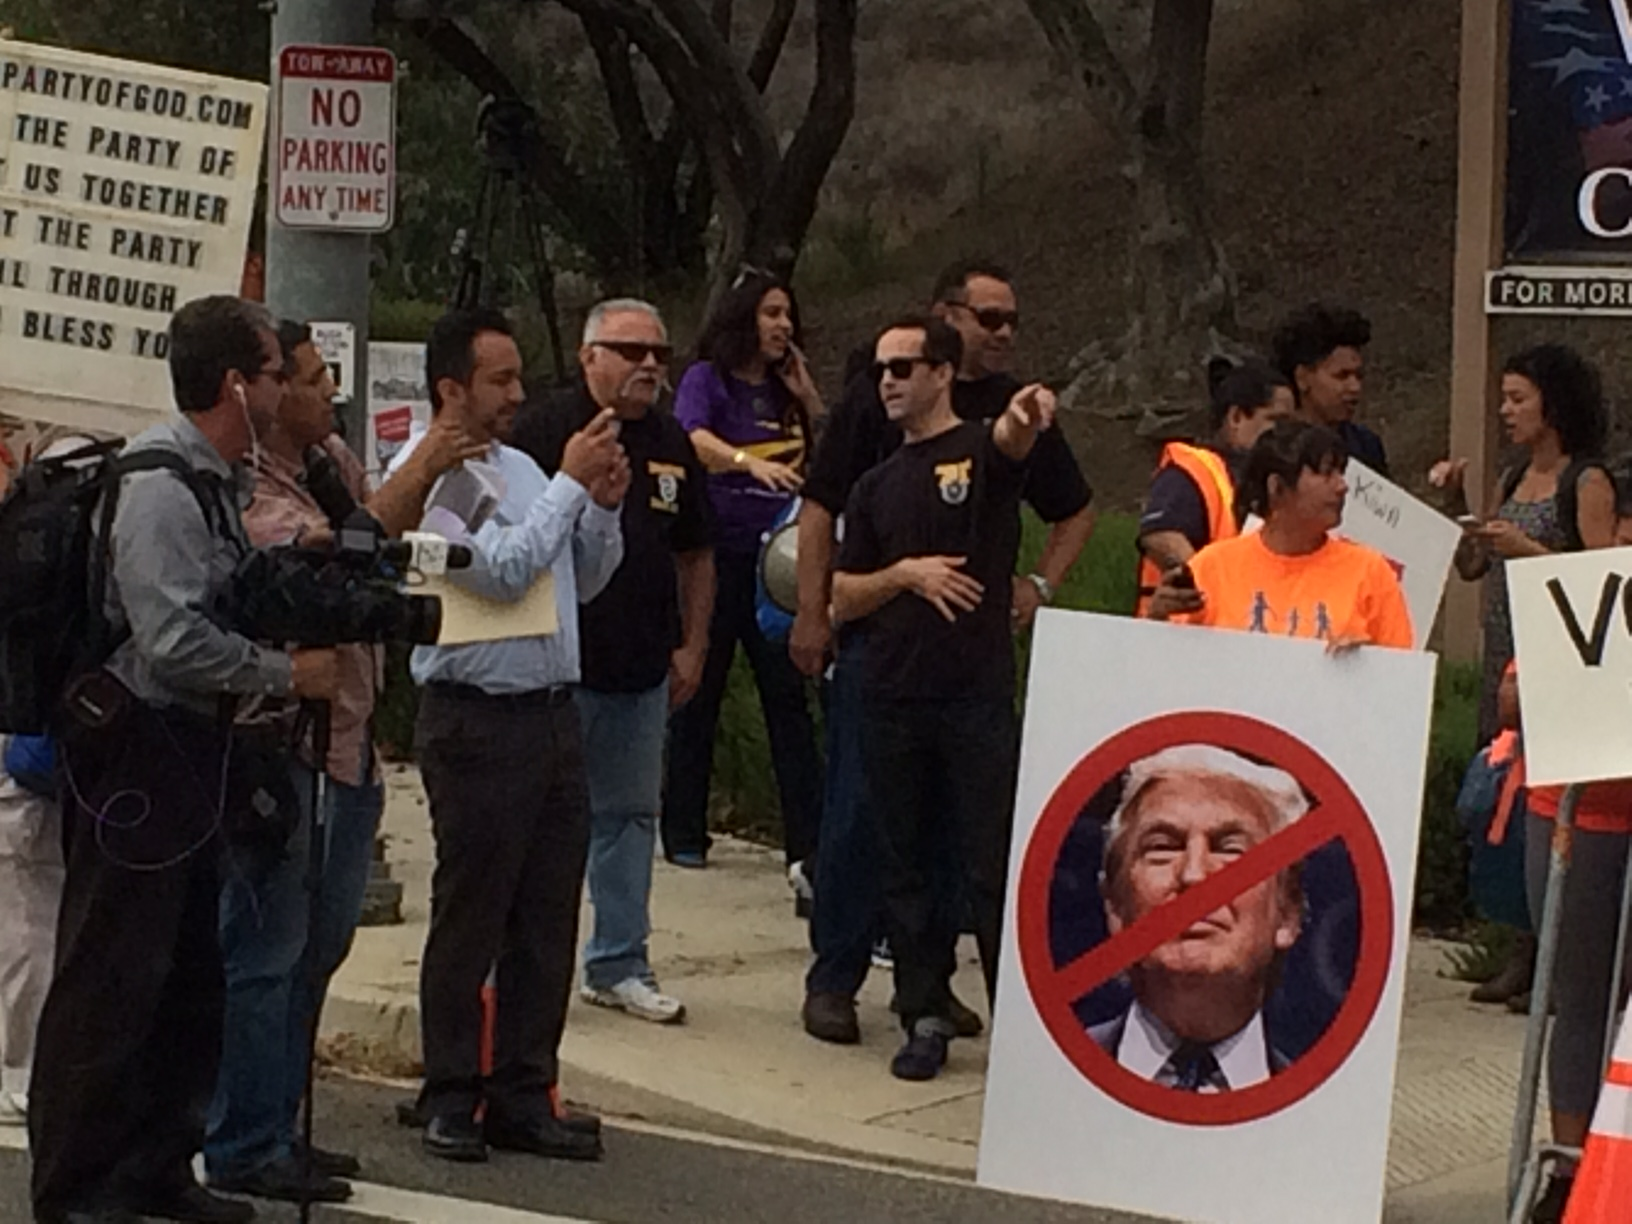 VOA reporter Mike O'Sullivan took this photo of protesters while aboard the media shuttle bus.